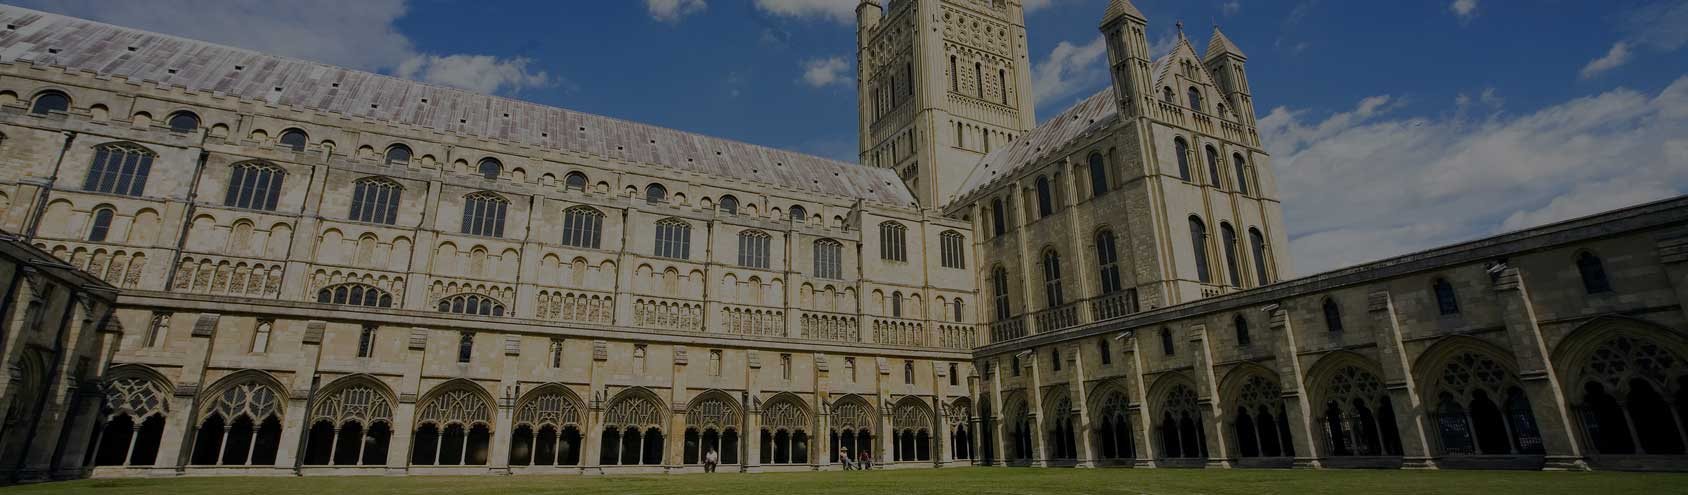 Norwich Student Accommodation - Norwich Cathedral